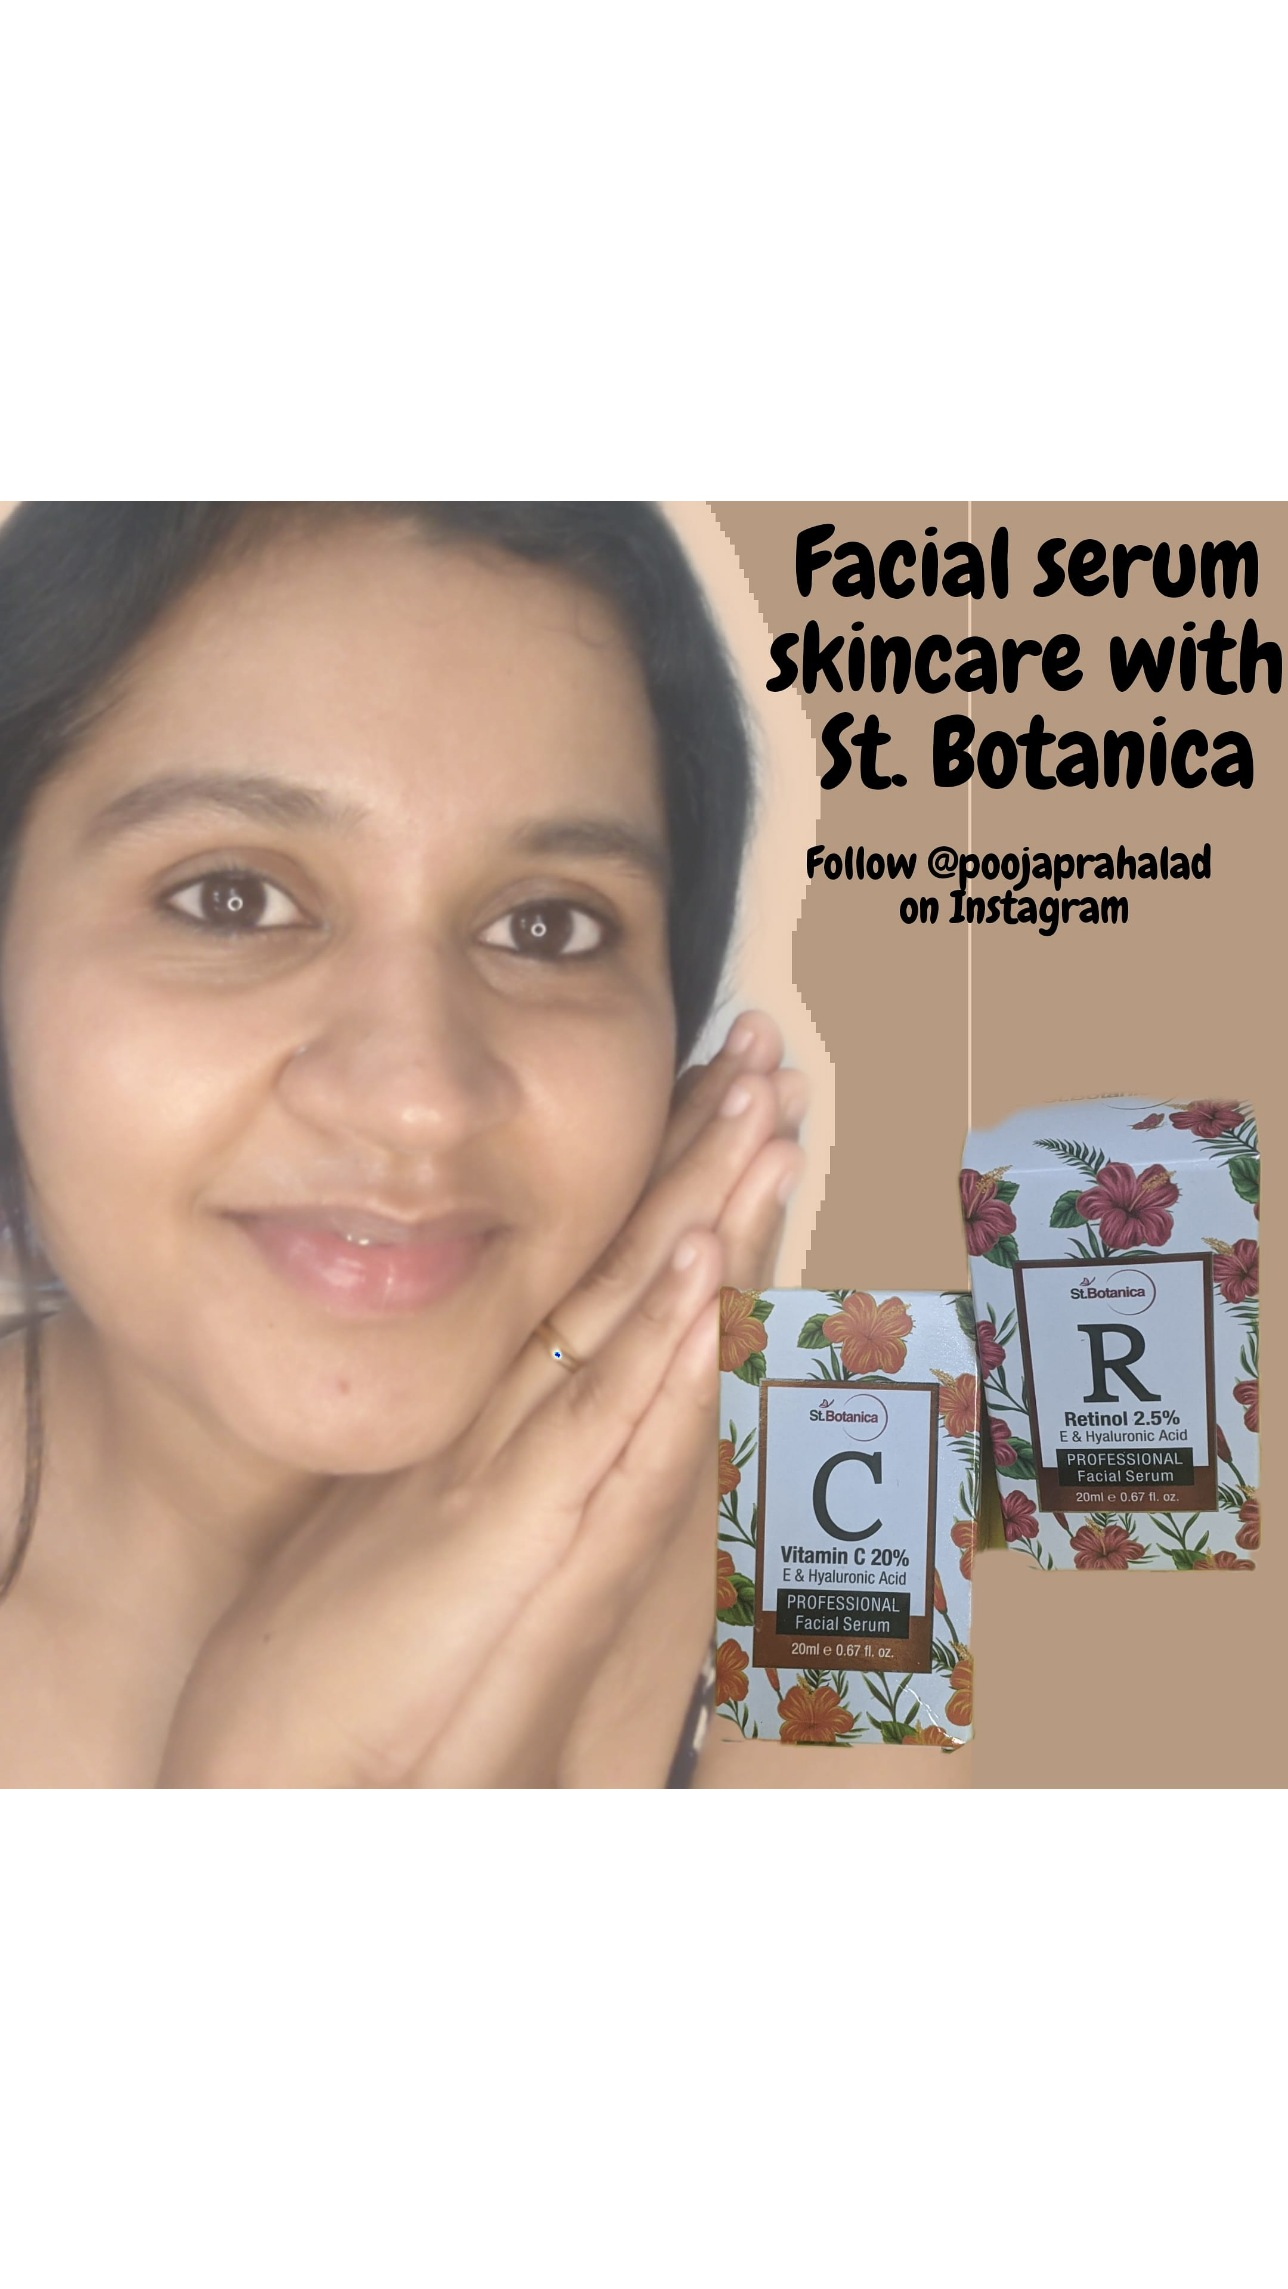 St.Botanica Retinol 2.5% Vitamin E & Hyaluronic Acid Professional Facial Serum -Perfect for my dry skin-By pooja_prahlad